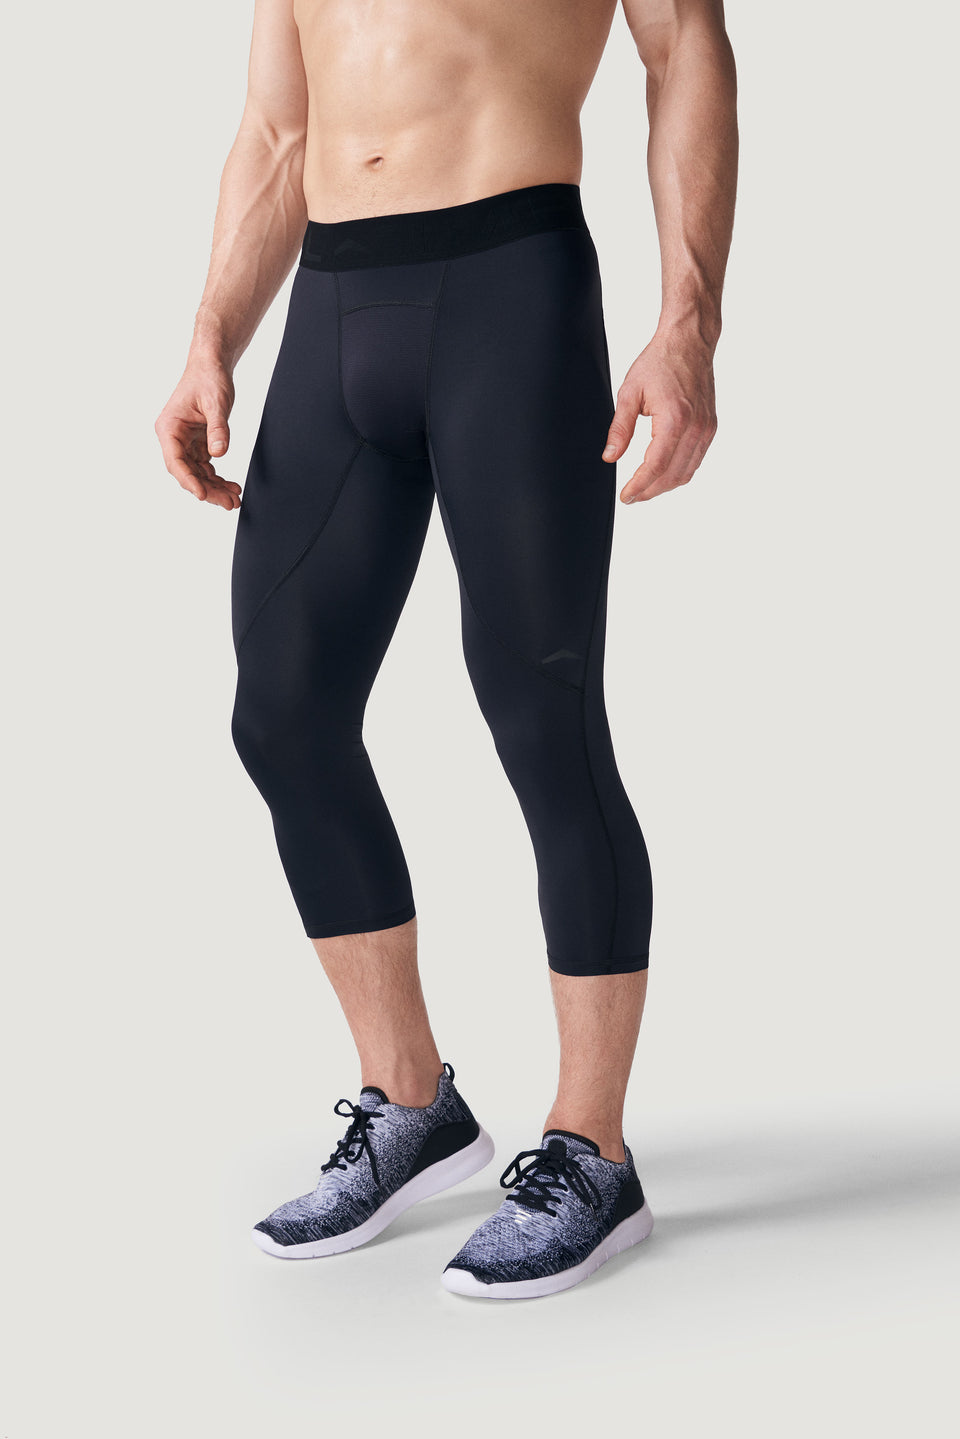 TMPL Sportswear Men's Alpha DRIVE 3/4 Compression Pant